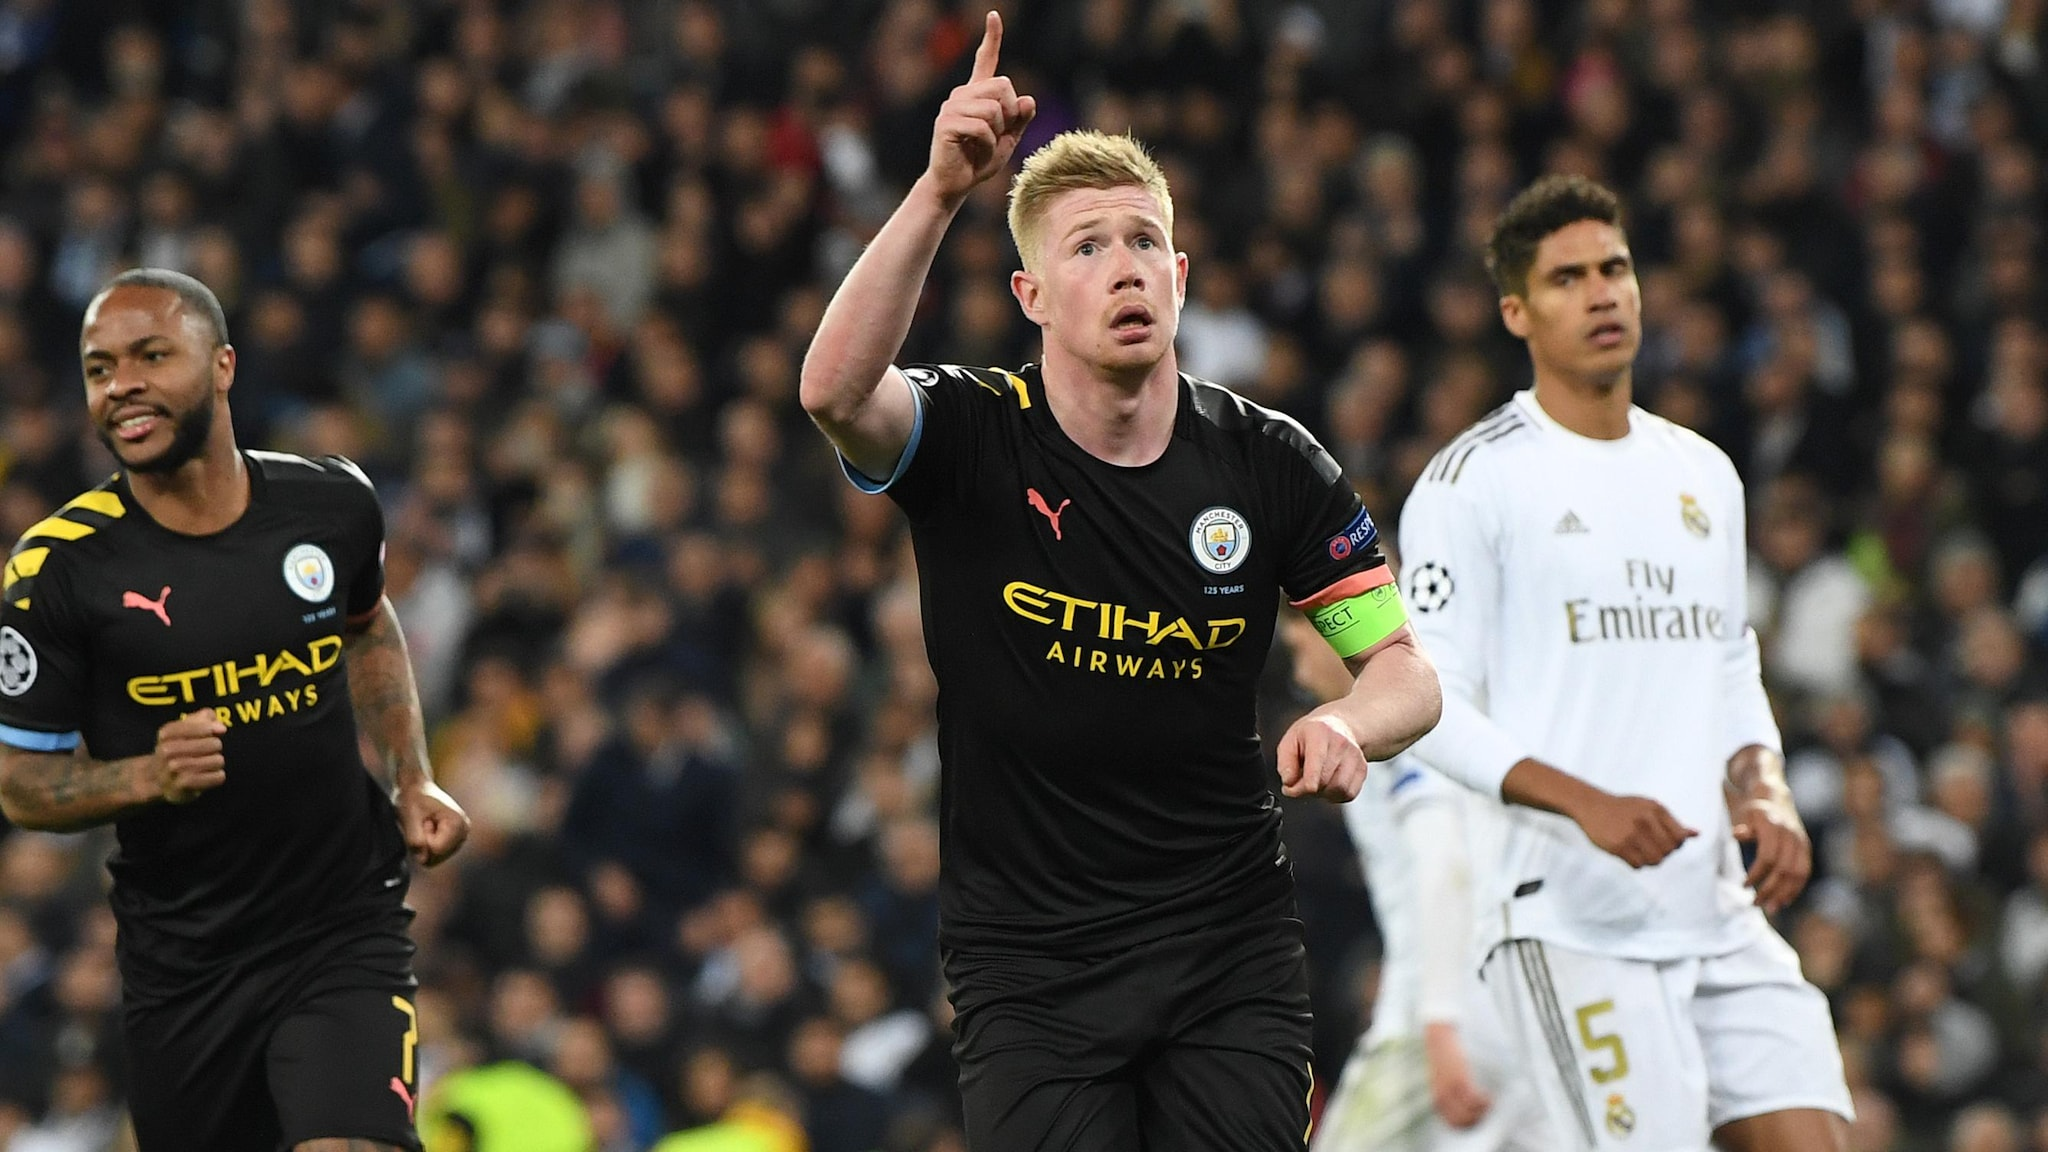 Man City Real Madrid Manchester City Vs Real Madrid Champions League Preview Where To Watch Predicted Line Ups Team News Uefa Champions League Uefa Com